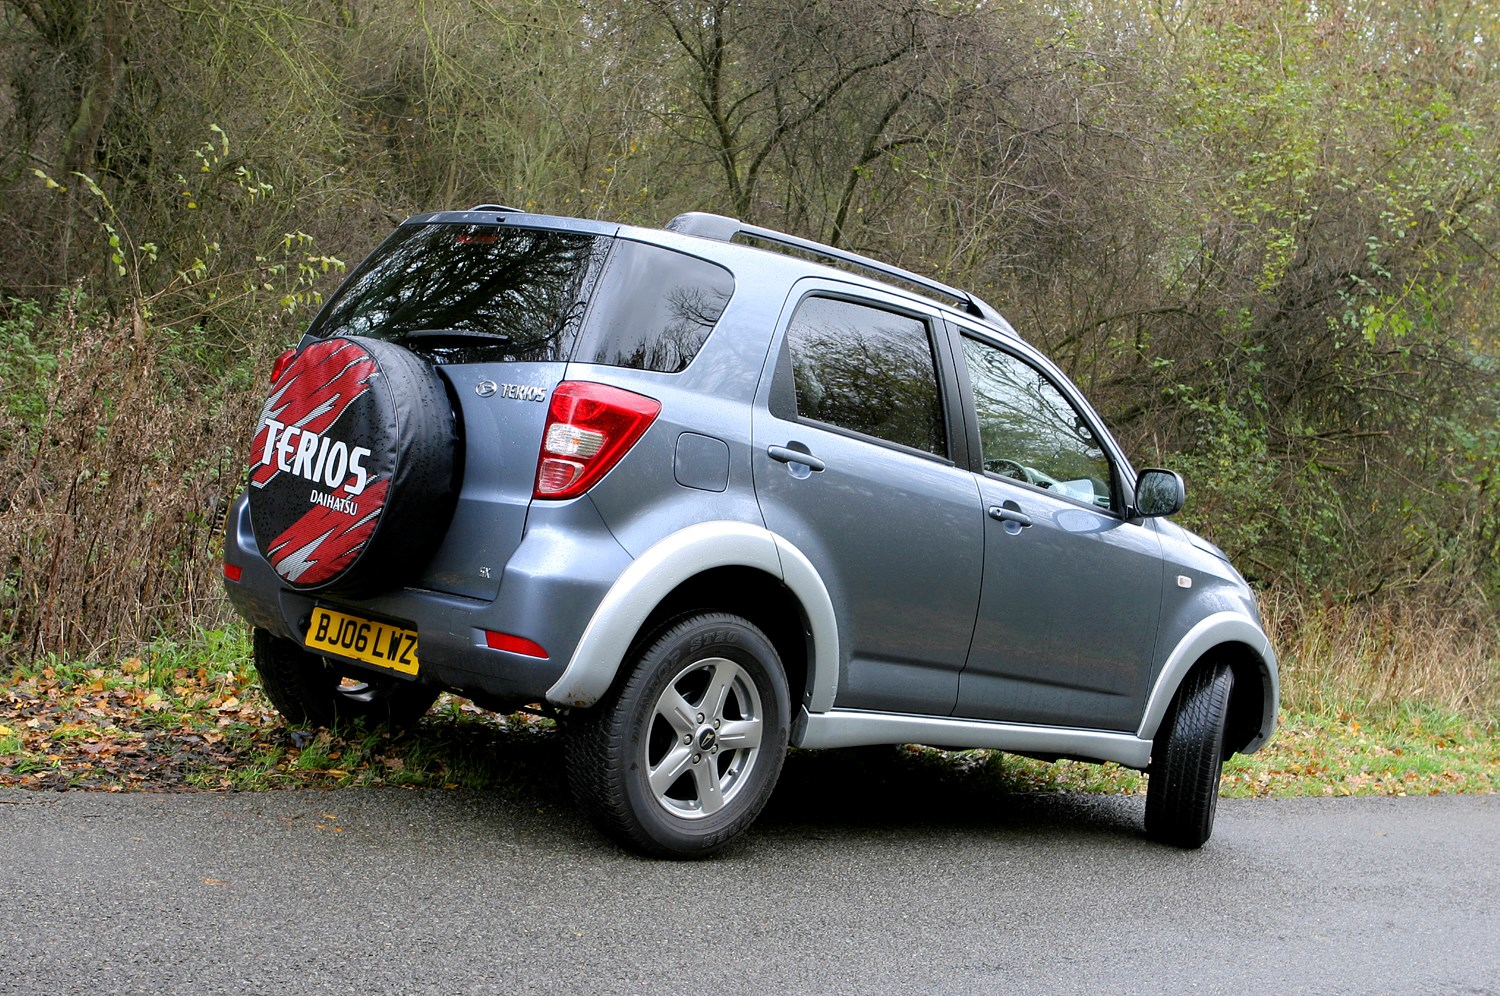 Monthly Car Insurance >> Daihatsu Terios Estate Review (2006 - 2010) | Parkers